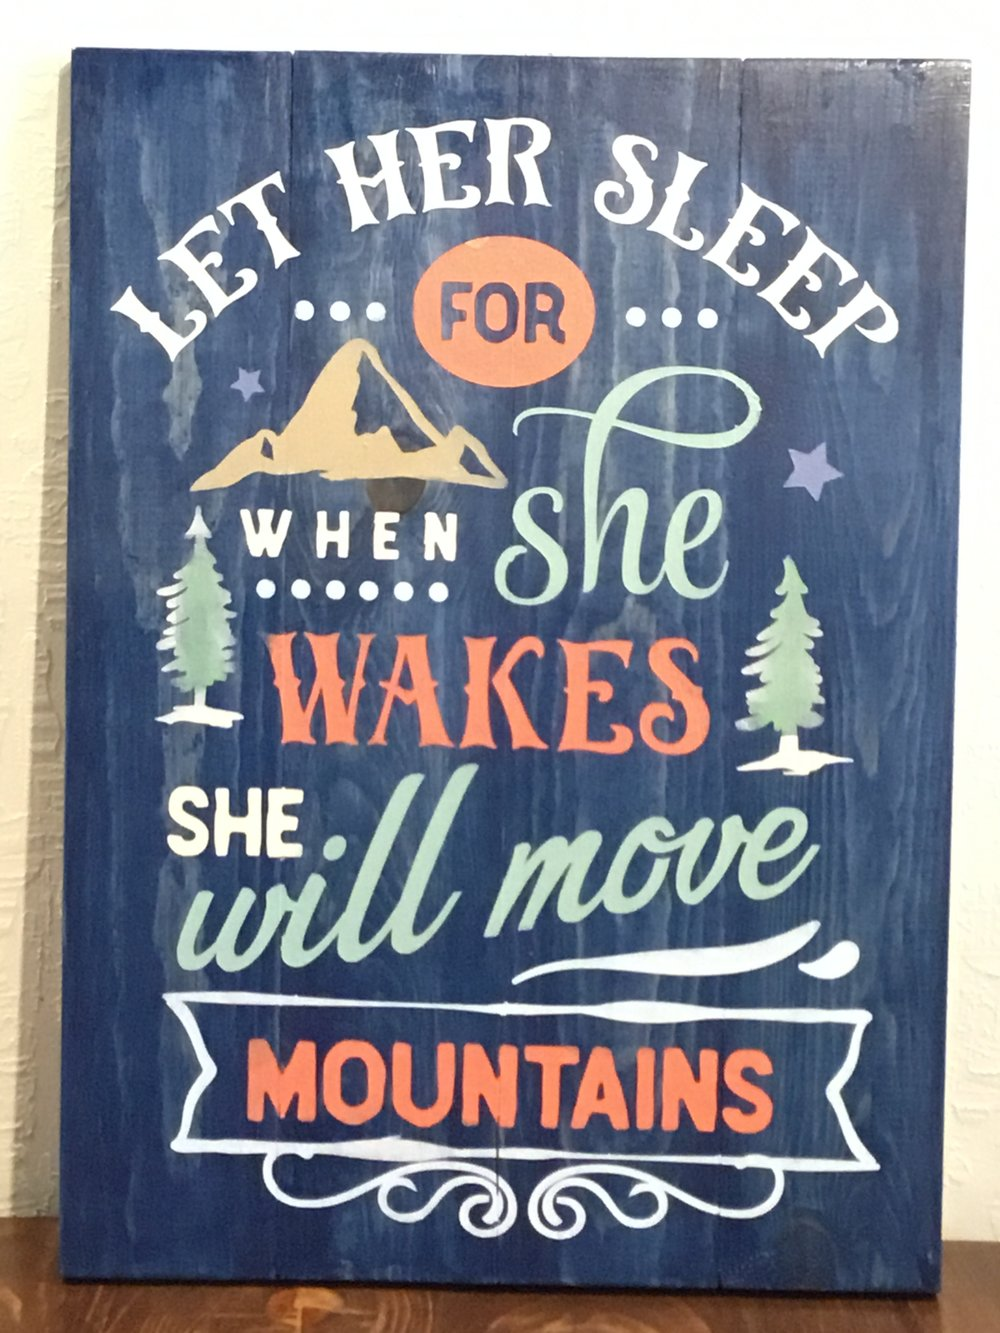 Let her sleep for when she..